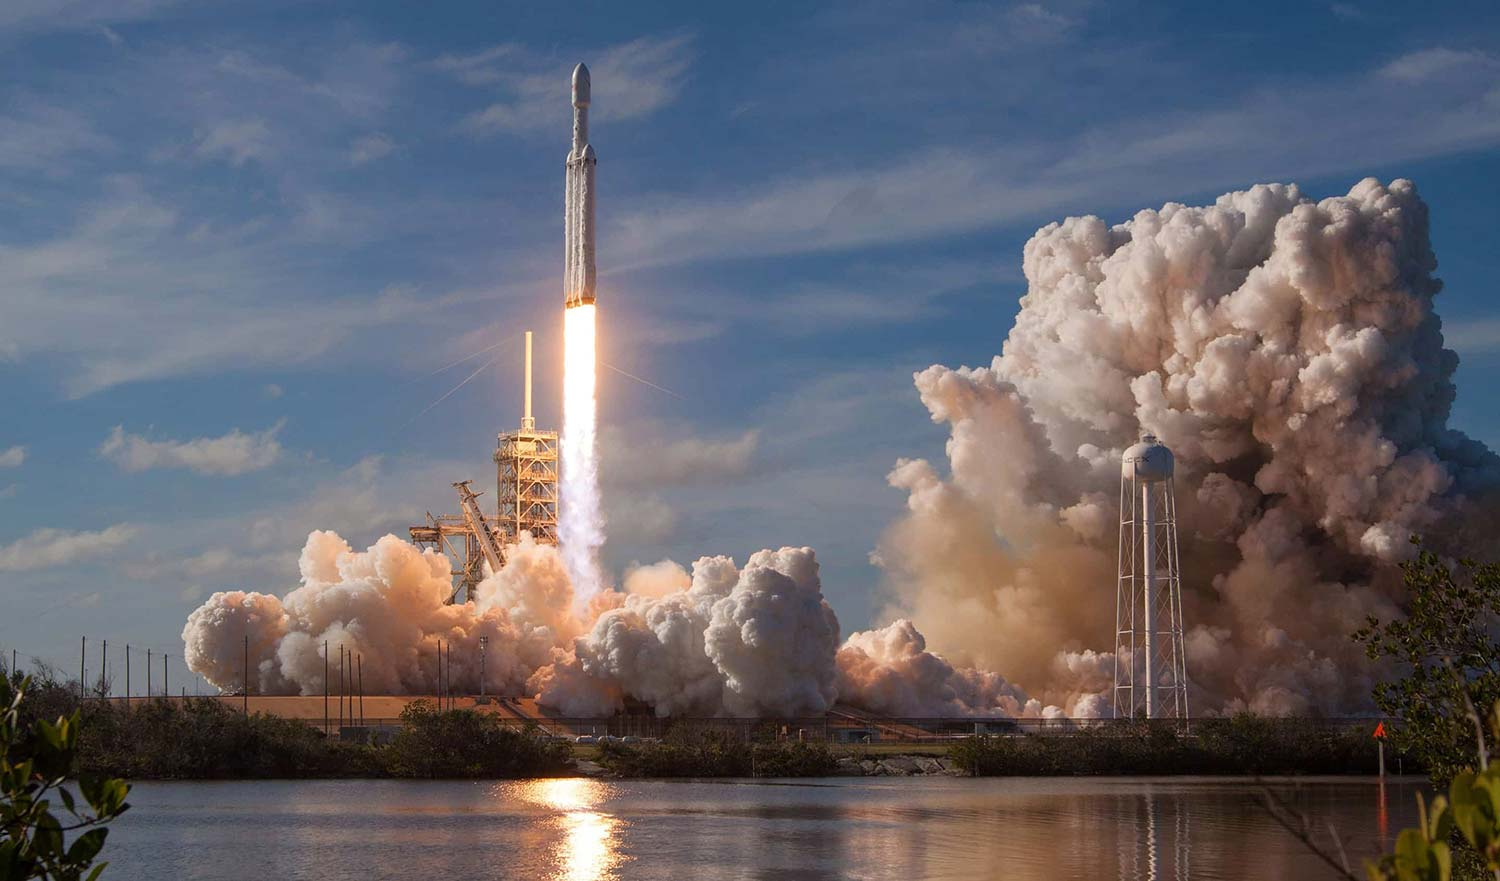 SpaceX Rocket launch signifying product launch